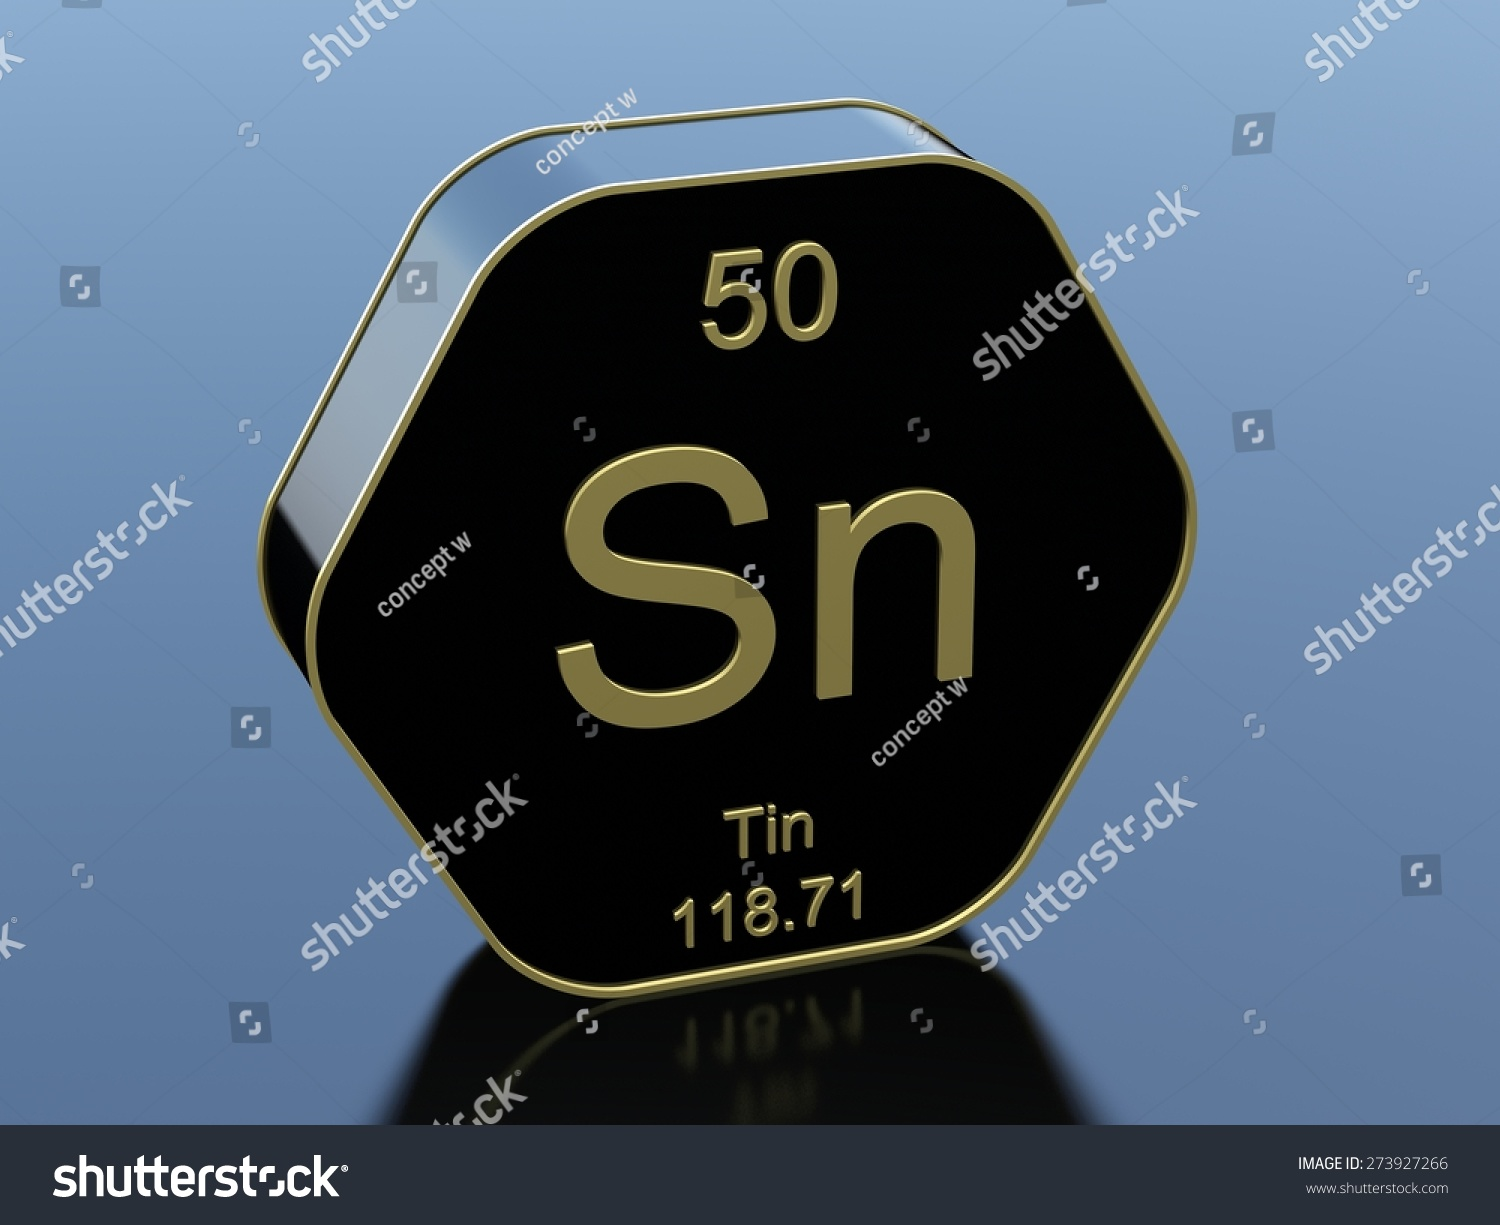 Salt symbol periodic table images periodic table images sn symbol periodic table gallery periodic table images periodic table symbol for salt image collections periodic gamestrikefo Gallery